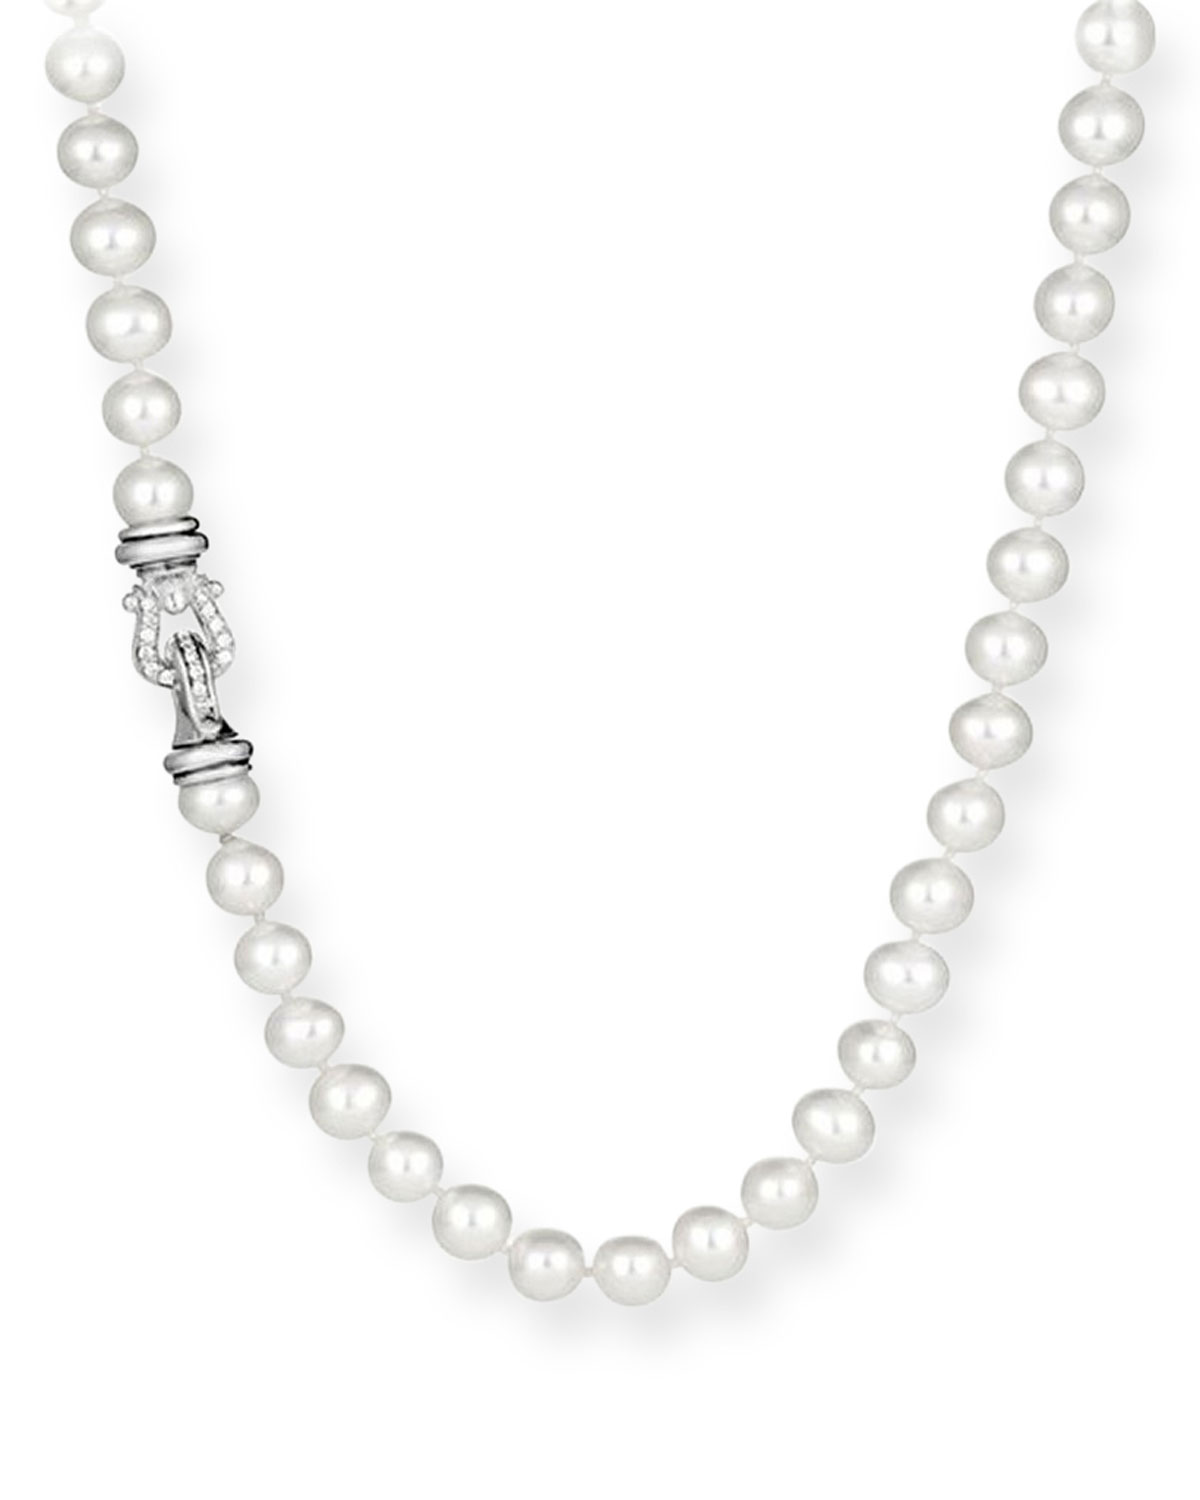 Pearl Necklace with Diamonds, 18